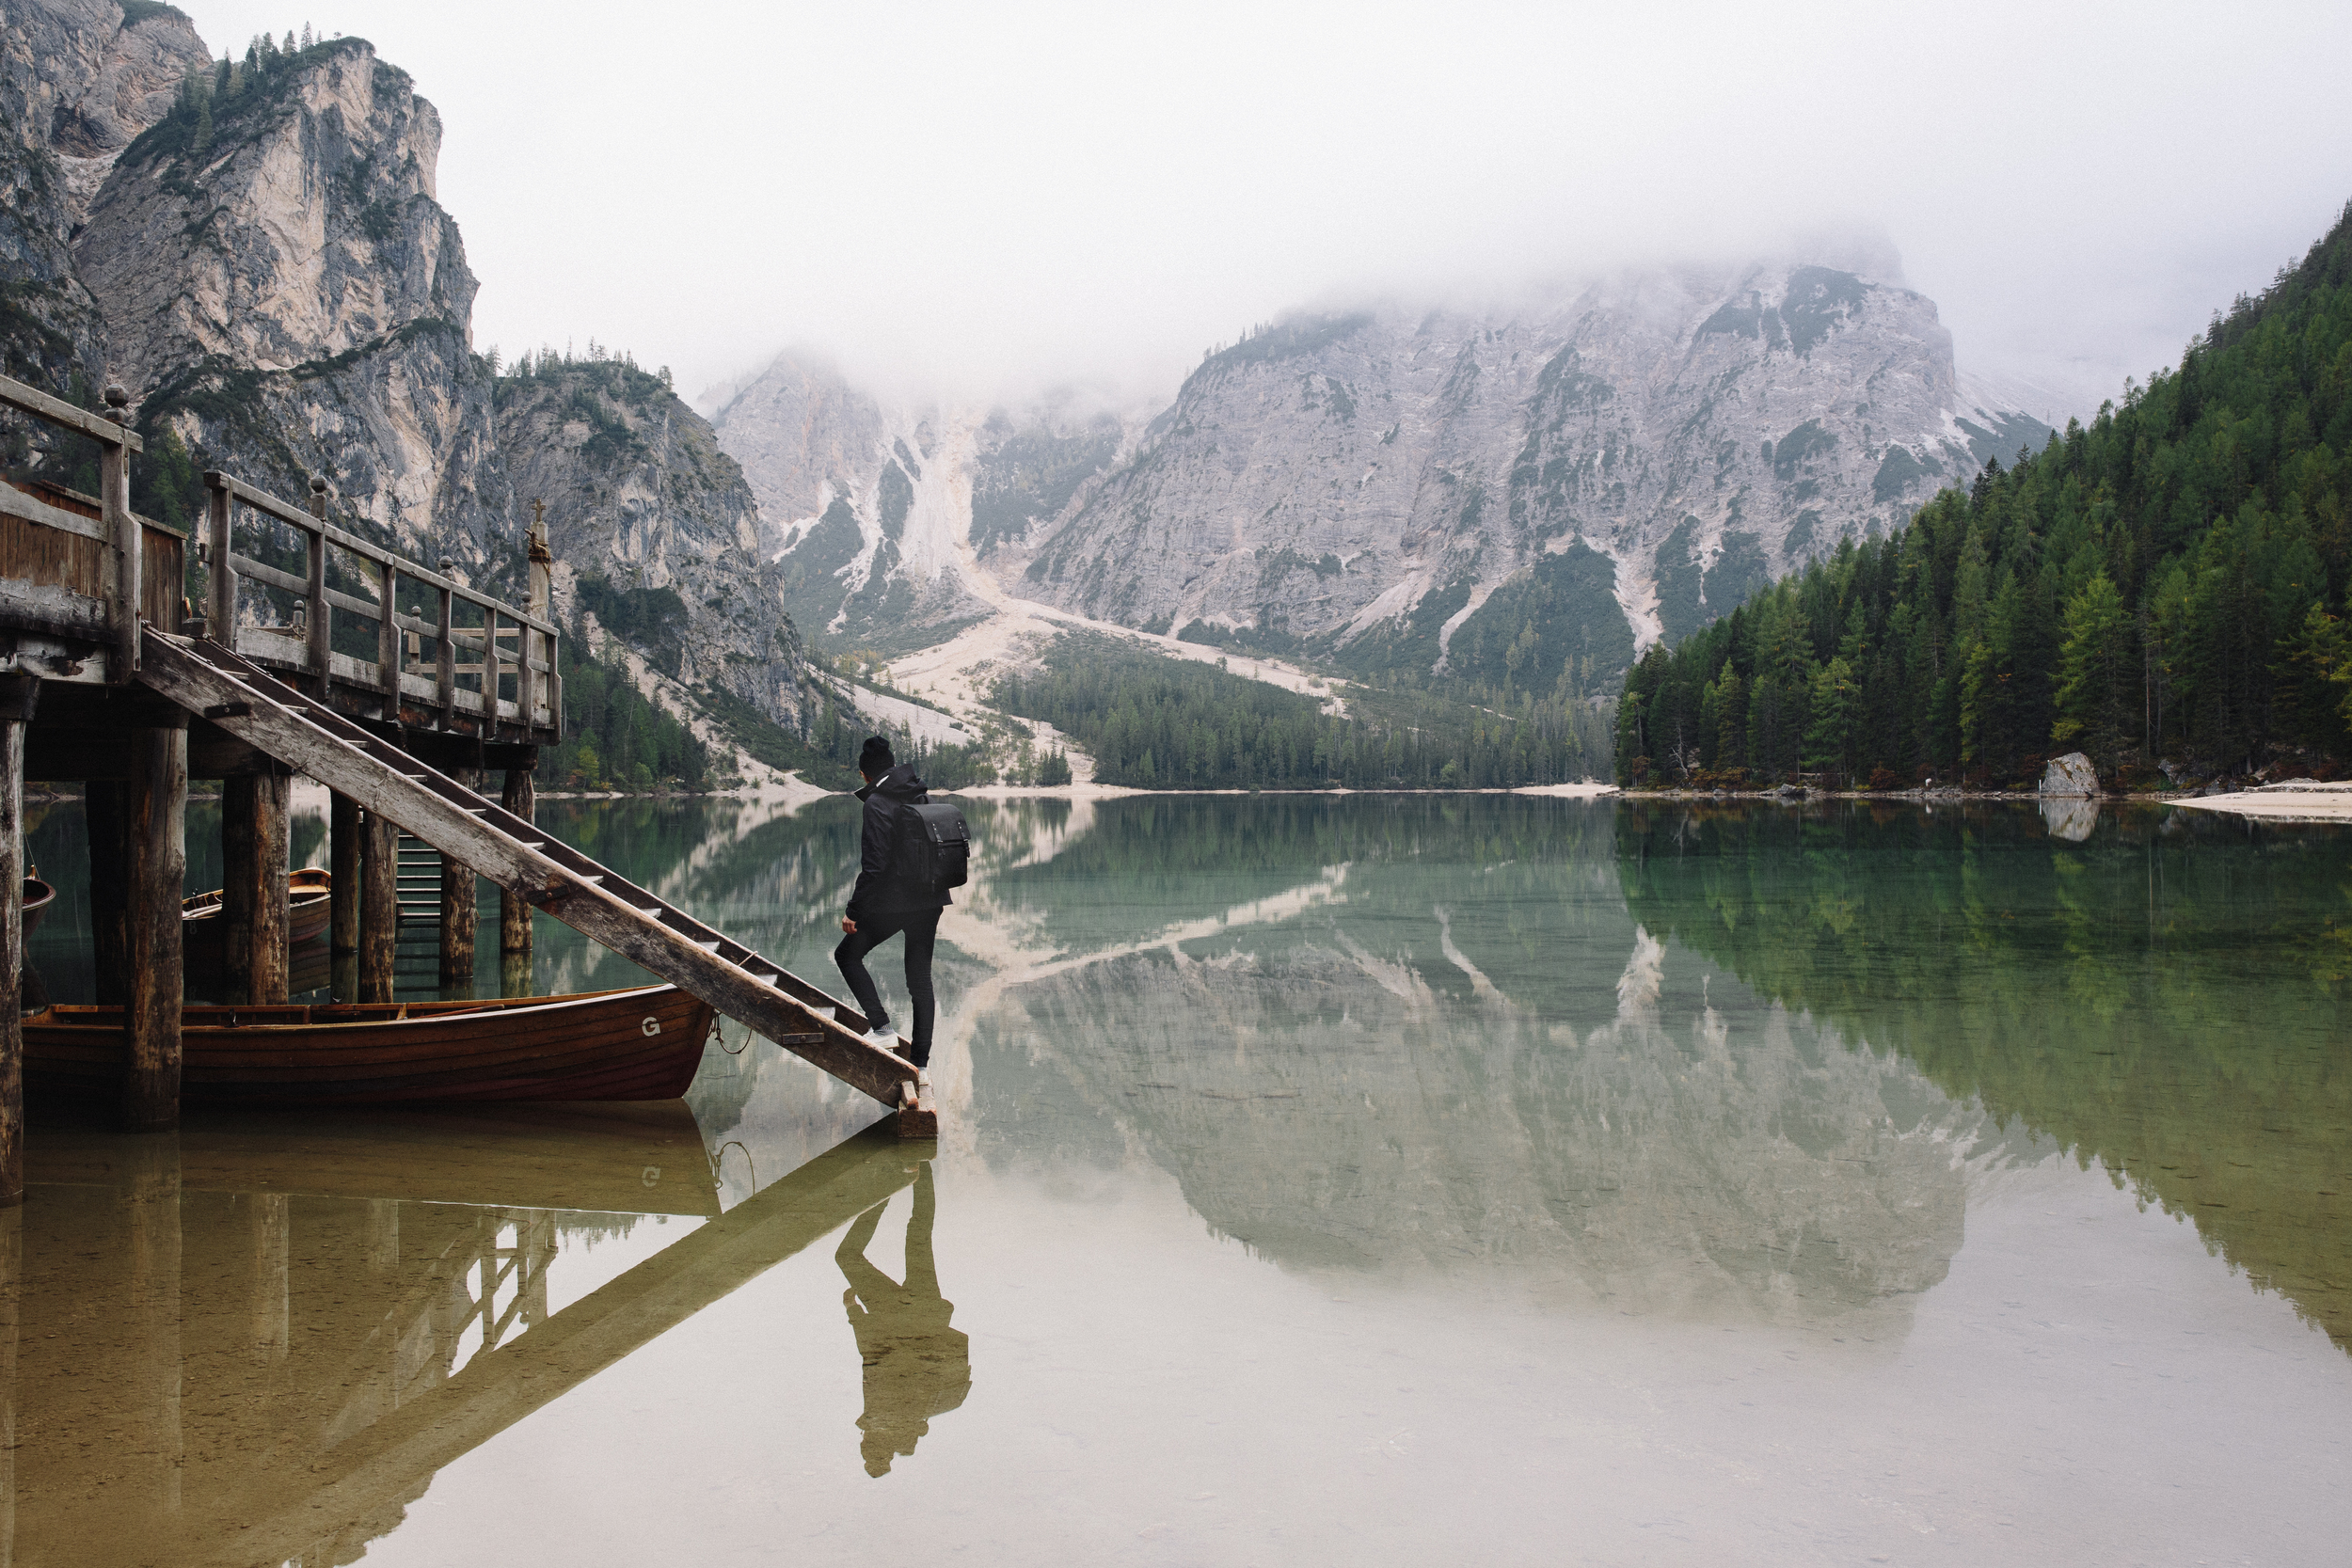 zack at lago braies.jpg